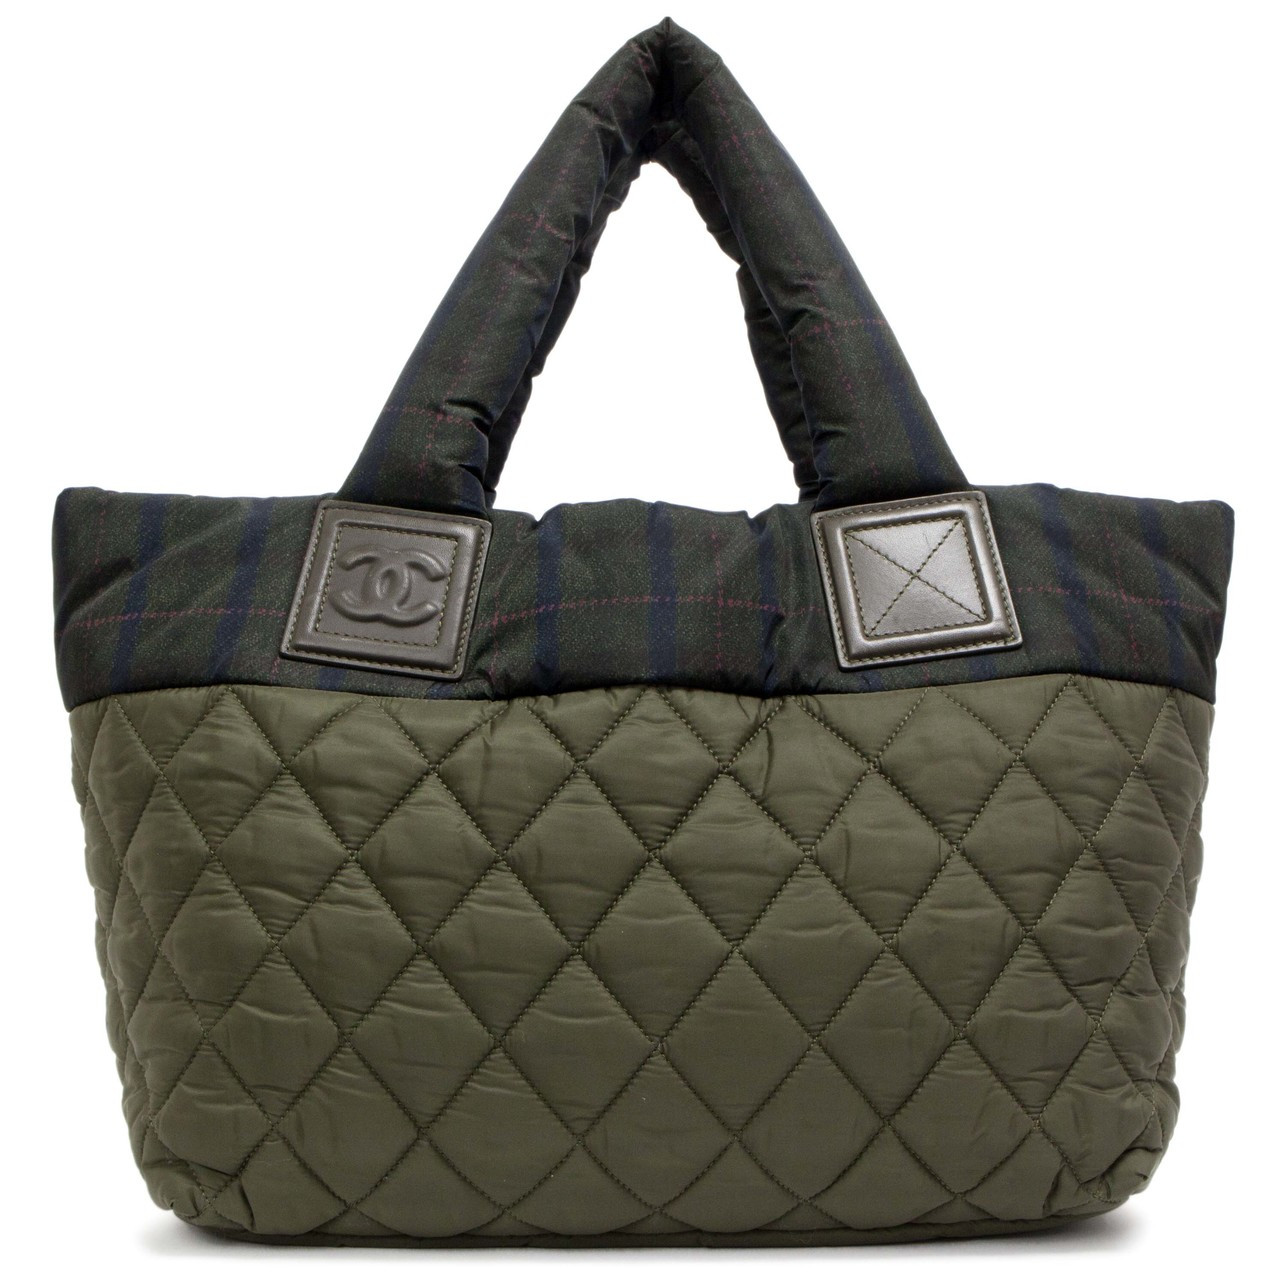 328fc1b6c9 Chanel Green Nylon Quilted Small Coco Cocoon Reversible Tote - modaselle